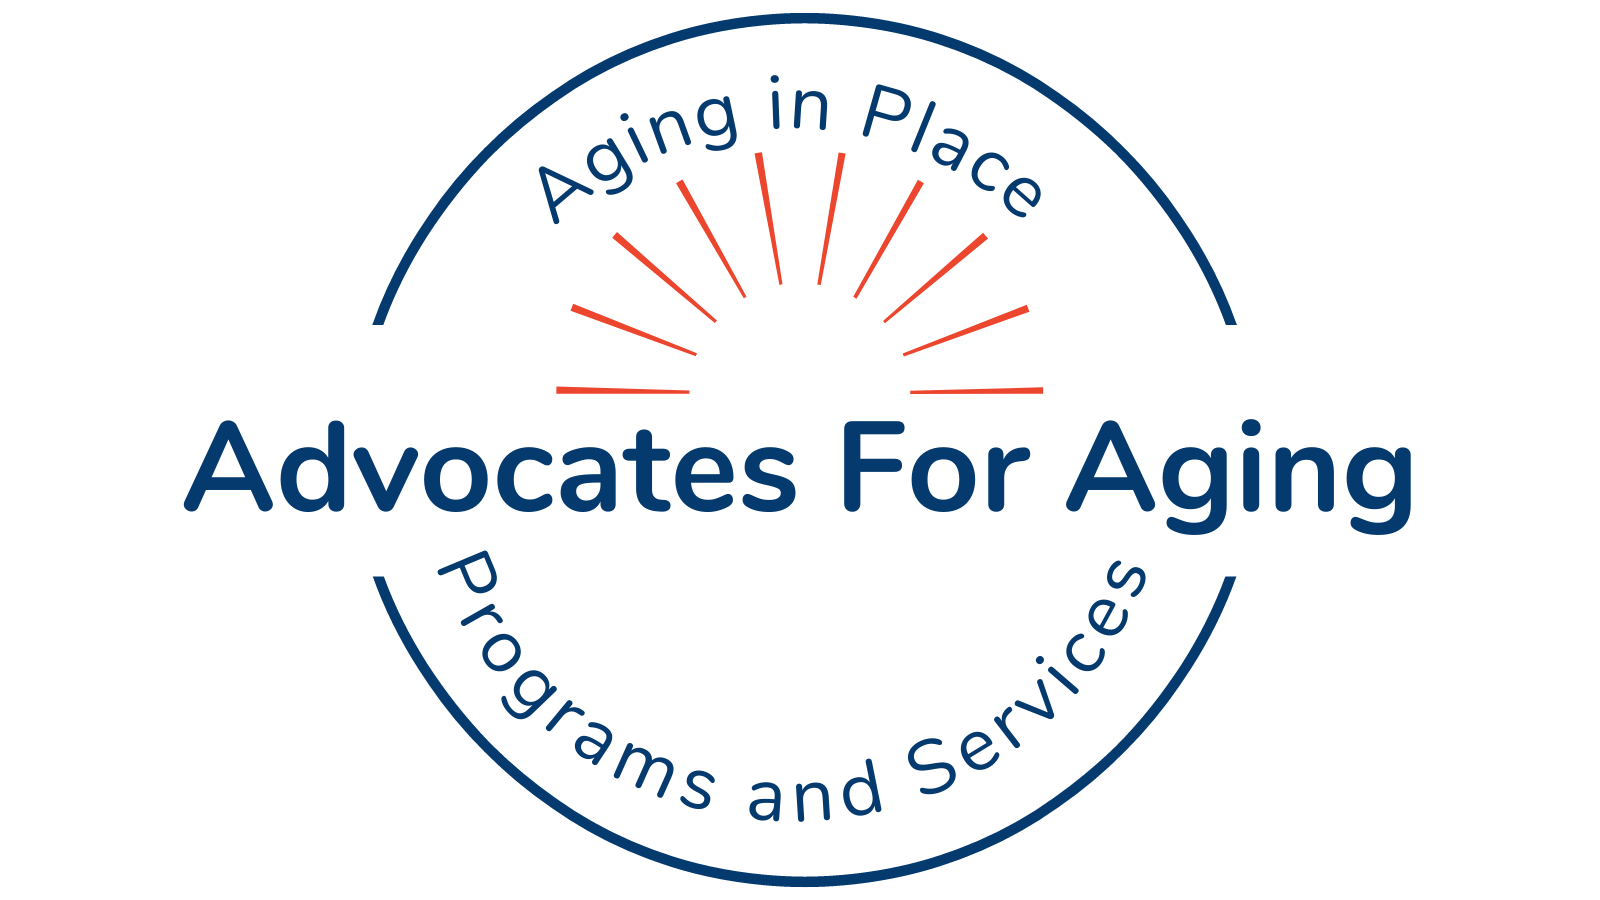 Advocates For Aging